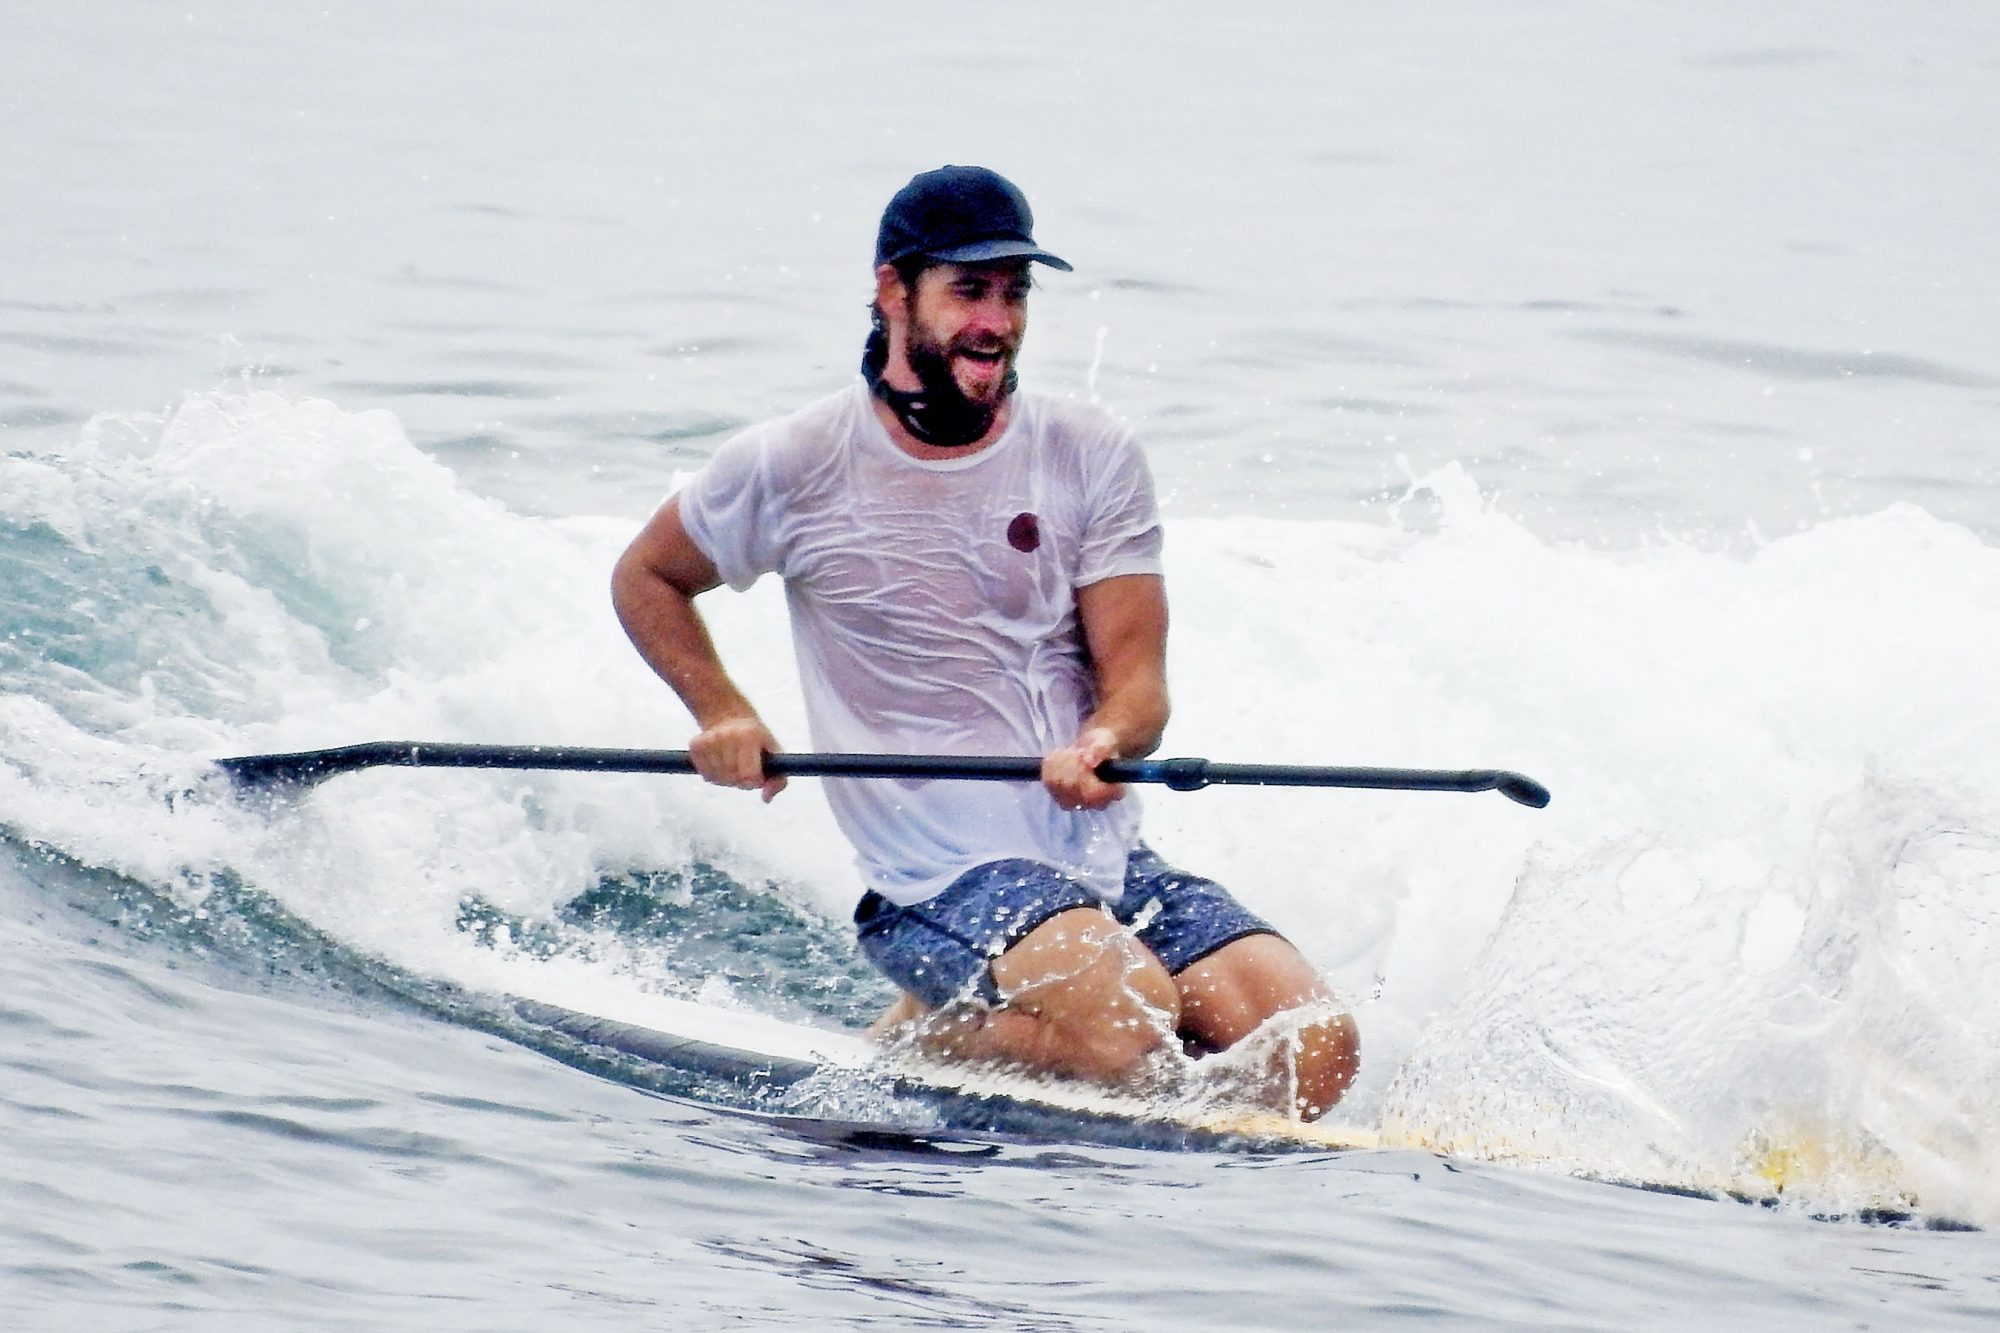 *EXCLUSIVE* Liam Hemsworth enjoys his Tuesday afternoon paddle boarding with friends